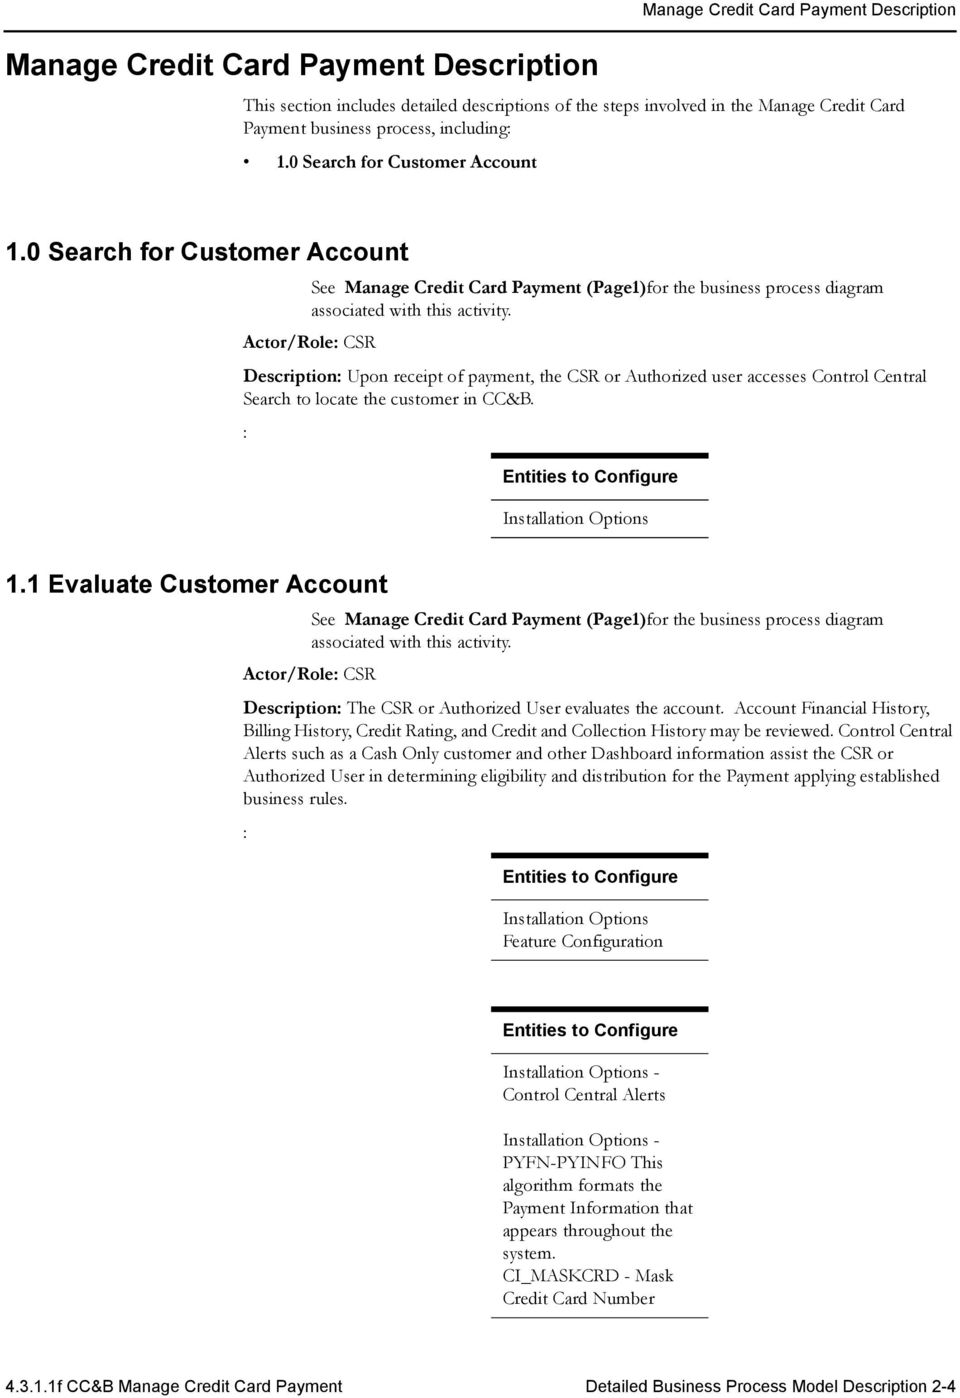 0 Search for Customer Account Description: Upon receipt of payment, the CSR or Authorized user accesses Control Central Search to locate the customer in CC&B.